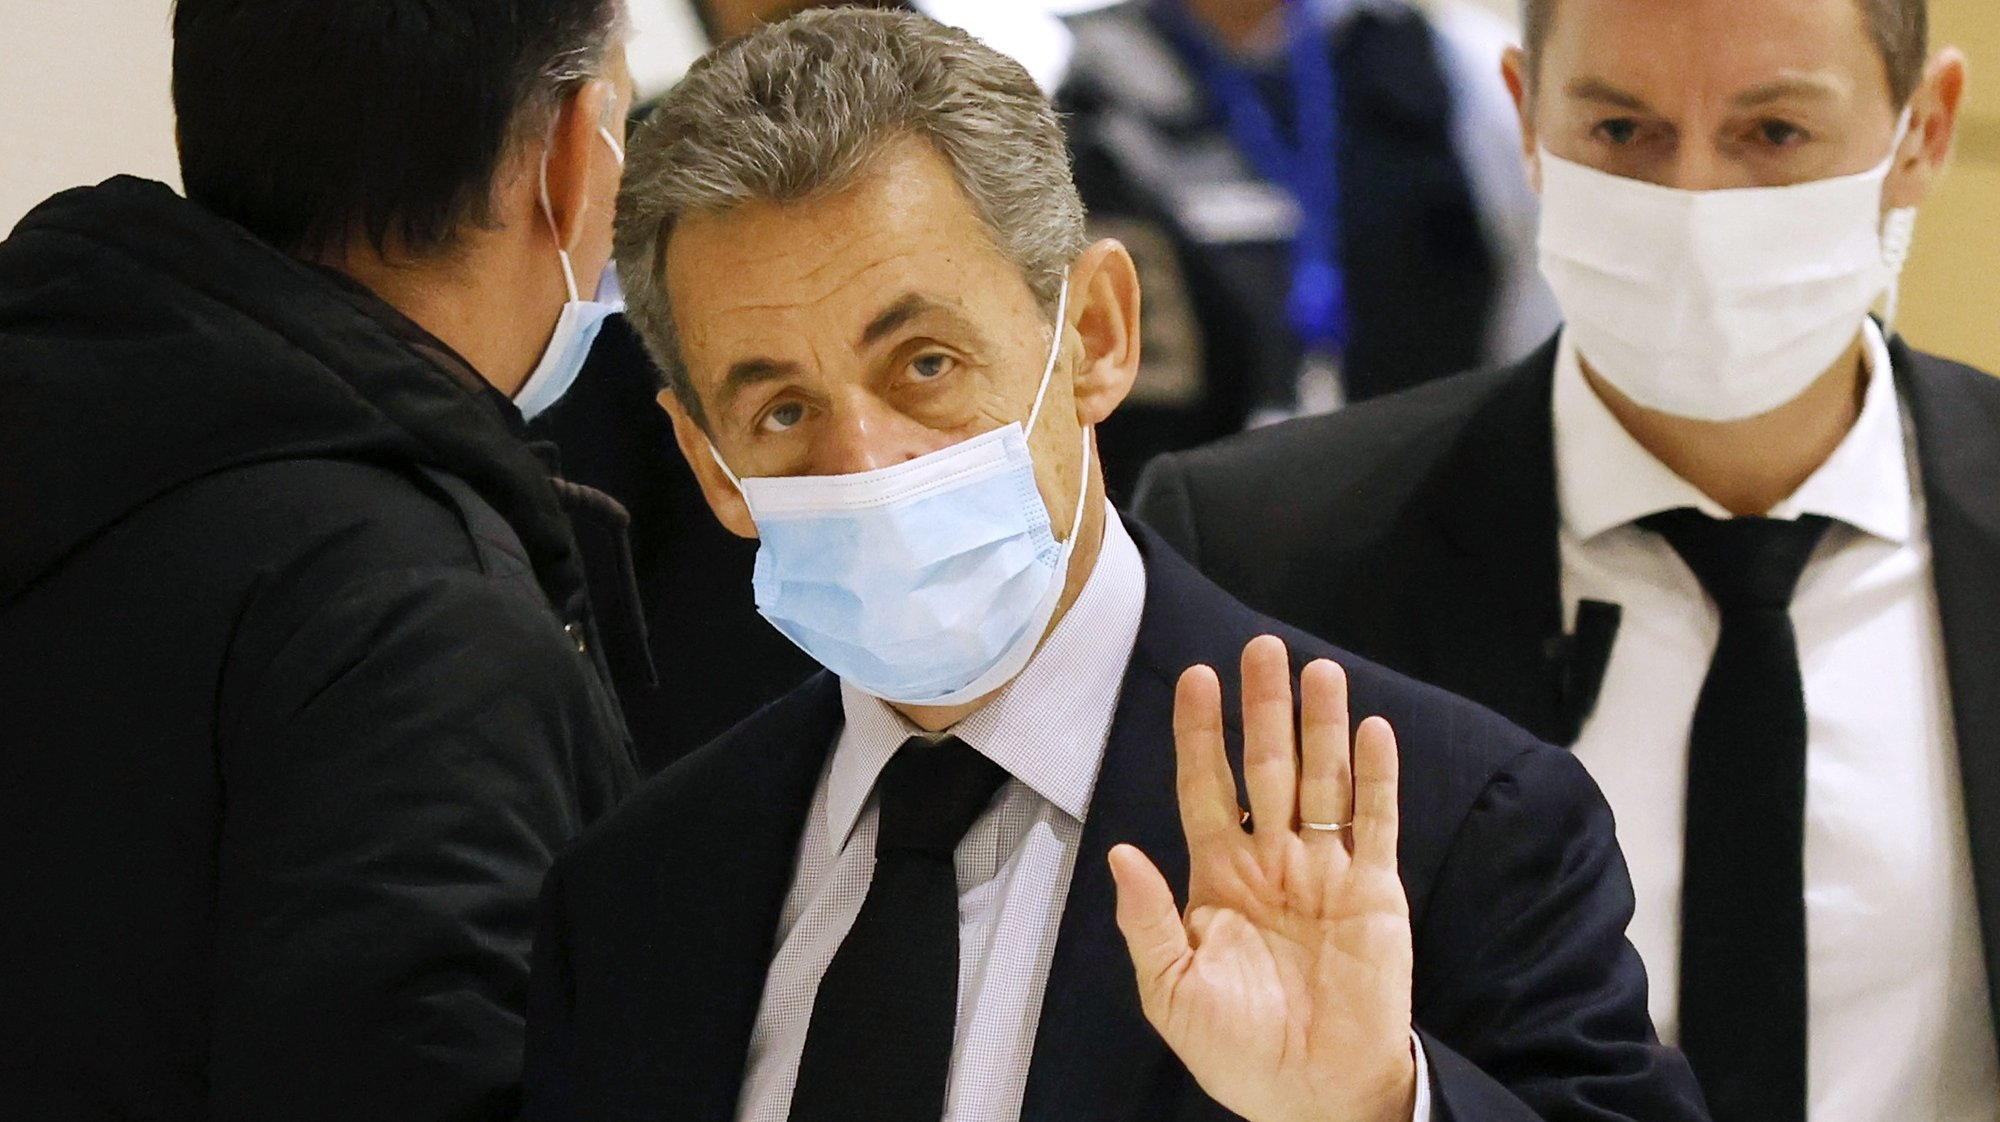 epa08874538 Former French president Nicolas Sarkozy (C) arrives at the court for his trial on corruption charges in the so-called 'wiretapping affair' in Paris, France, 10 December 2020. In 2013, Nicolas Sarkozy was using a false name, Paul Bismuth, to make phone calls to his lawyer, Thierry Herzog, about the decision that the Court of Cassation was about to take regarding the seizure of presidential diaries in a separate case. The trial is due to run from 23 November to 10 December 2020.  EPA/YOAN VALAT